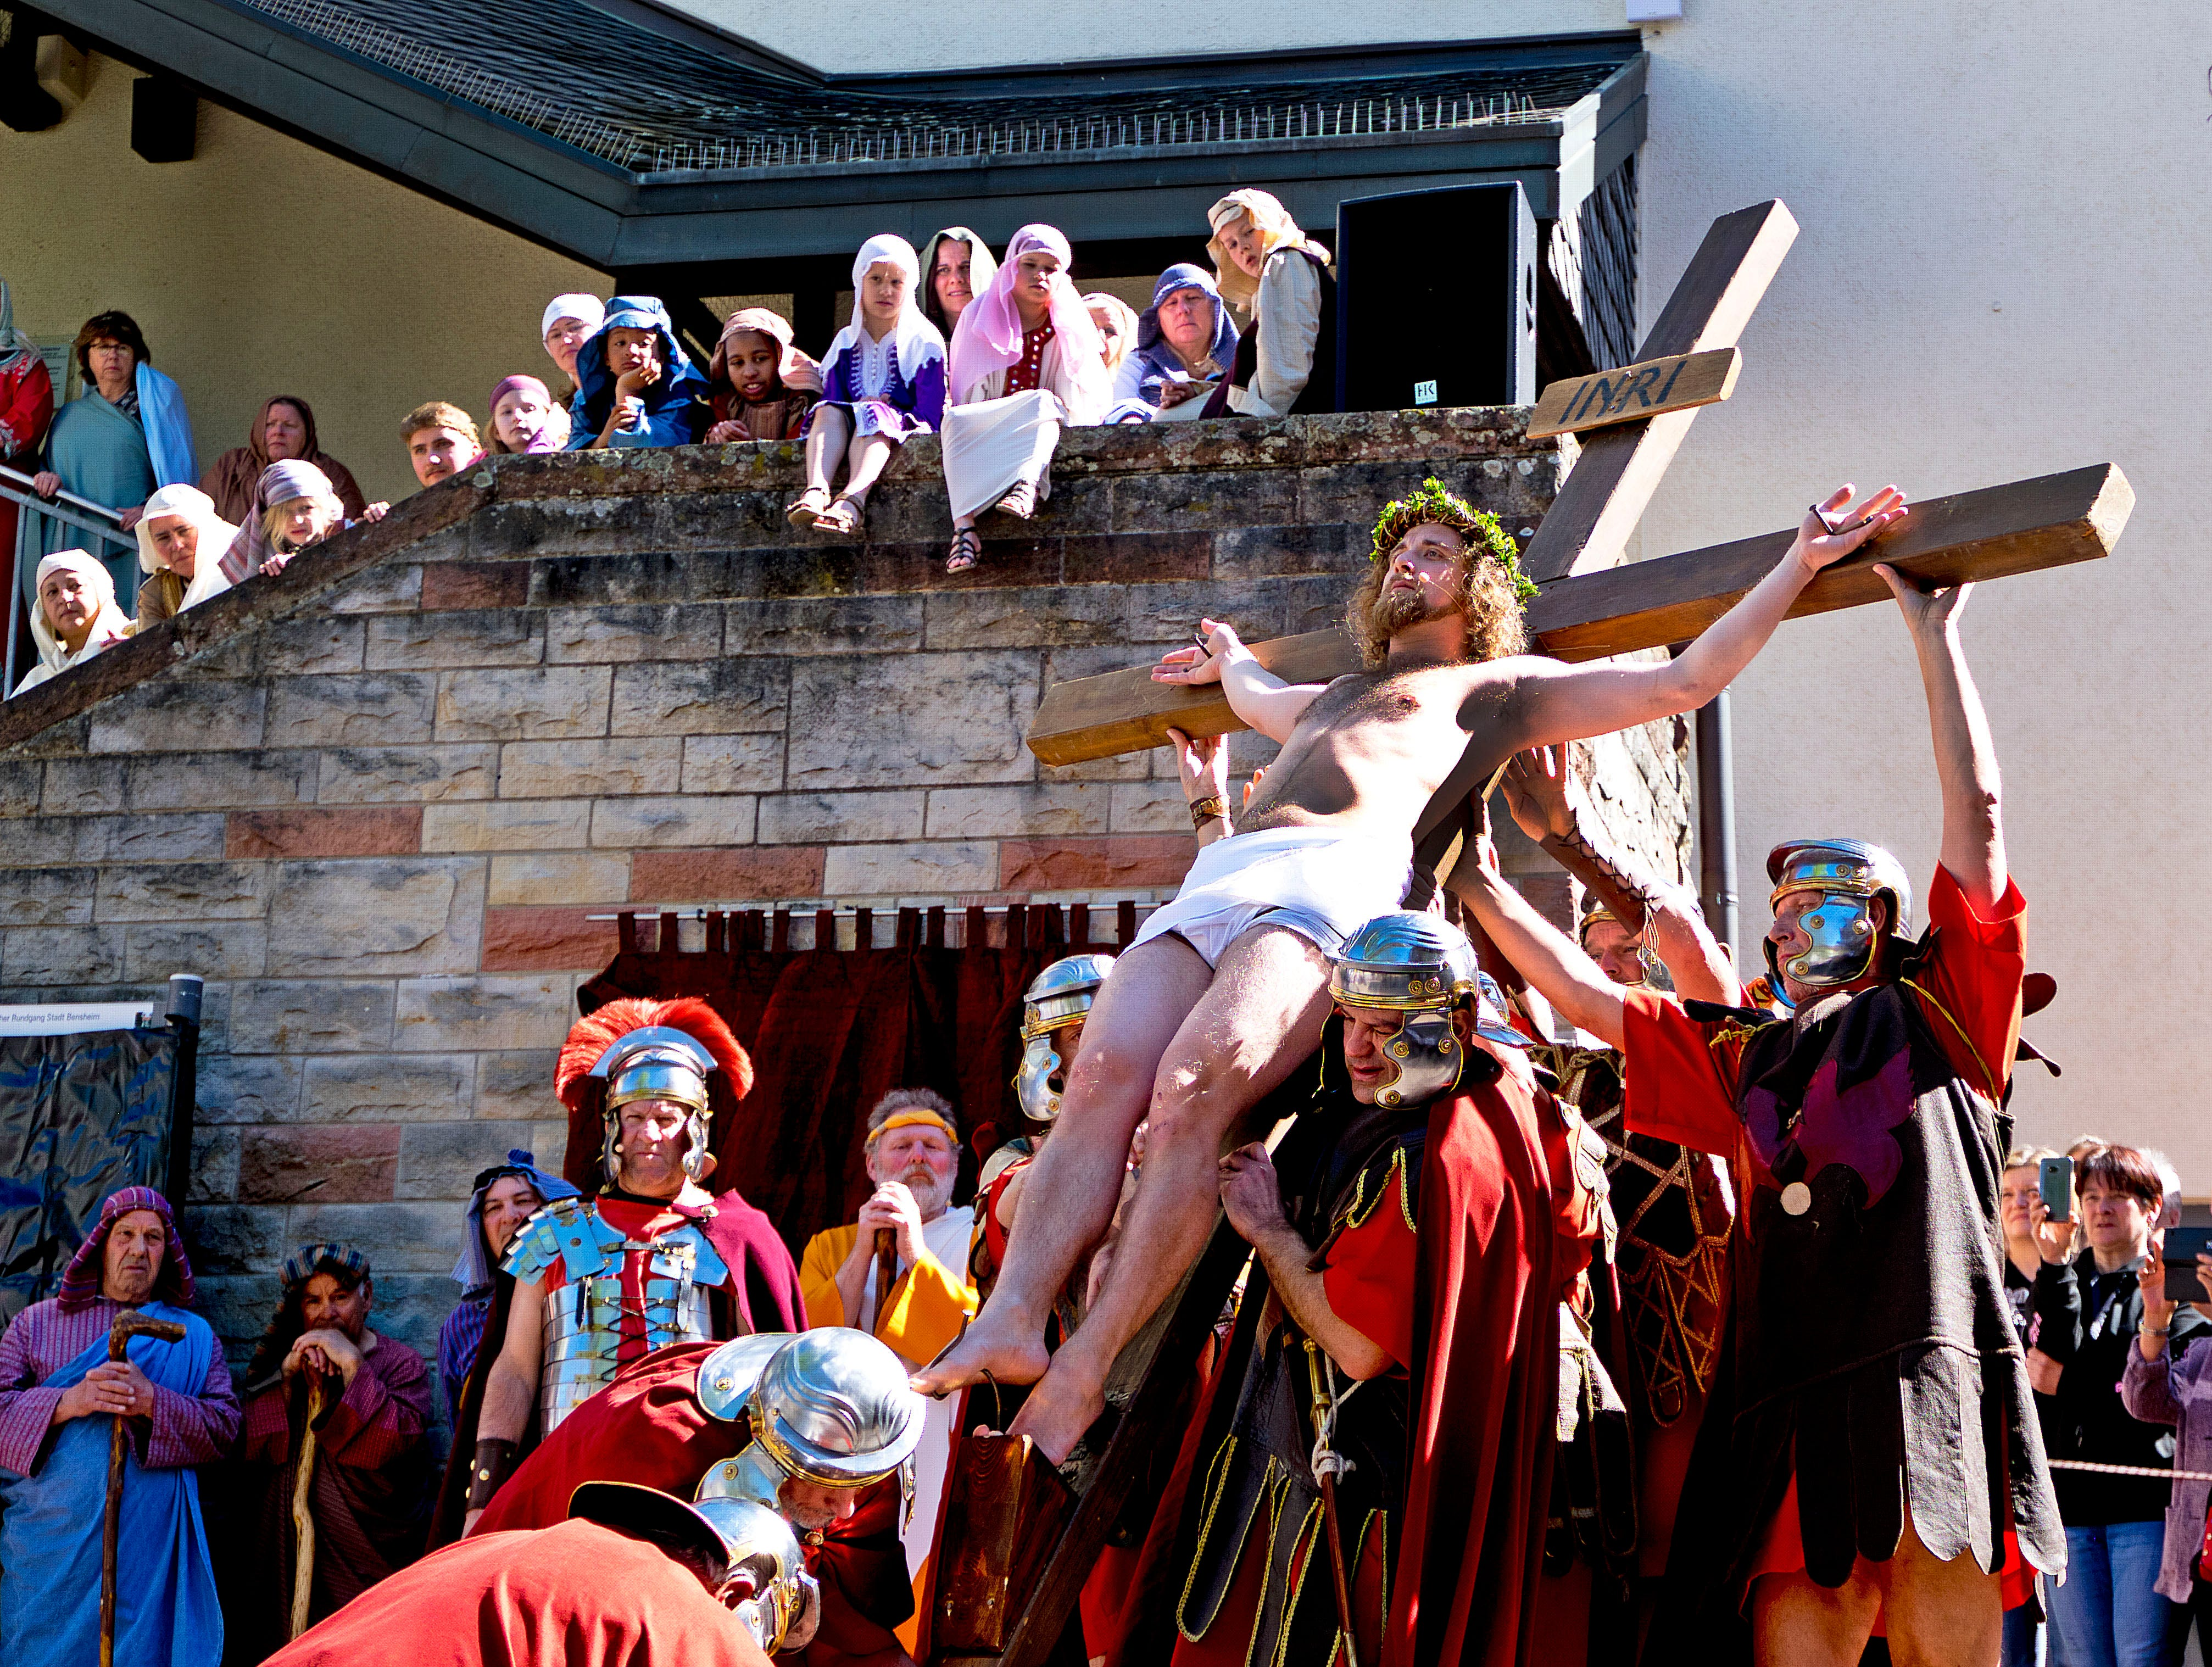 An actor playing Jesus is fixed on a cross in the city of Bensheim near Frankfurt, Germany, on Good Friday, April 19, 2019. Hundreds of spectators watched the annual Passion re-enacting the crucifixion of Jesus Christ organized by the Italian catholic community.